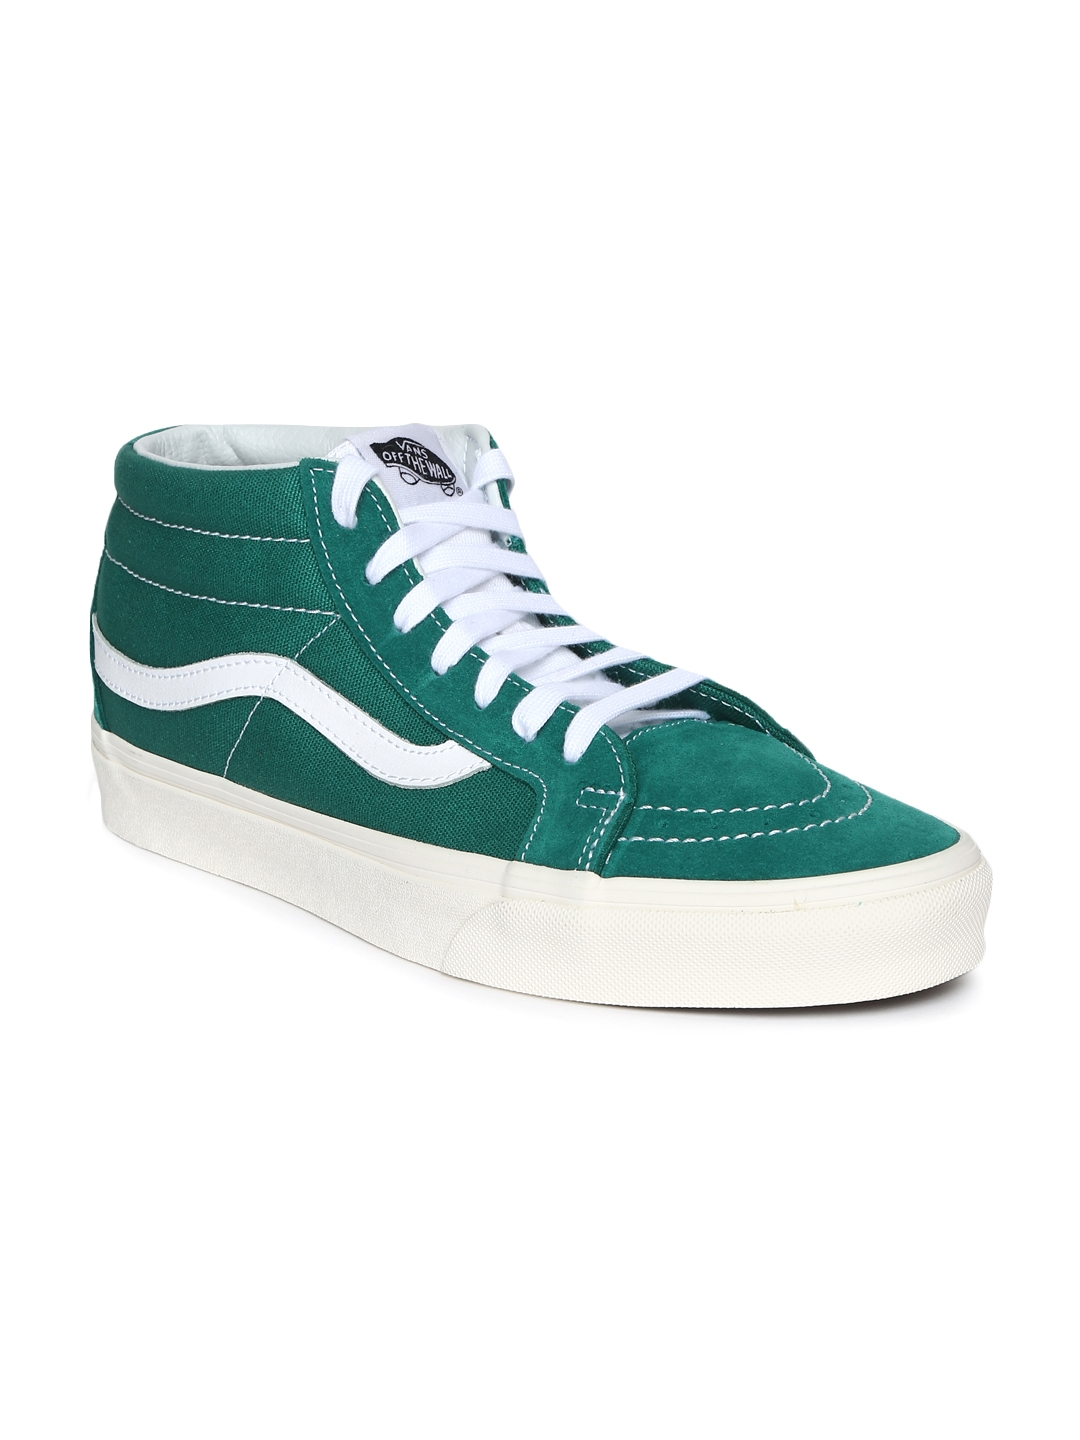 d2beea4b69 Buy Vans Unisex Green SK8 High Top Sneakers - Casual Shoes for ...